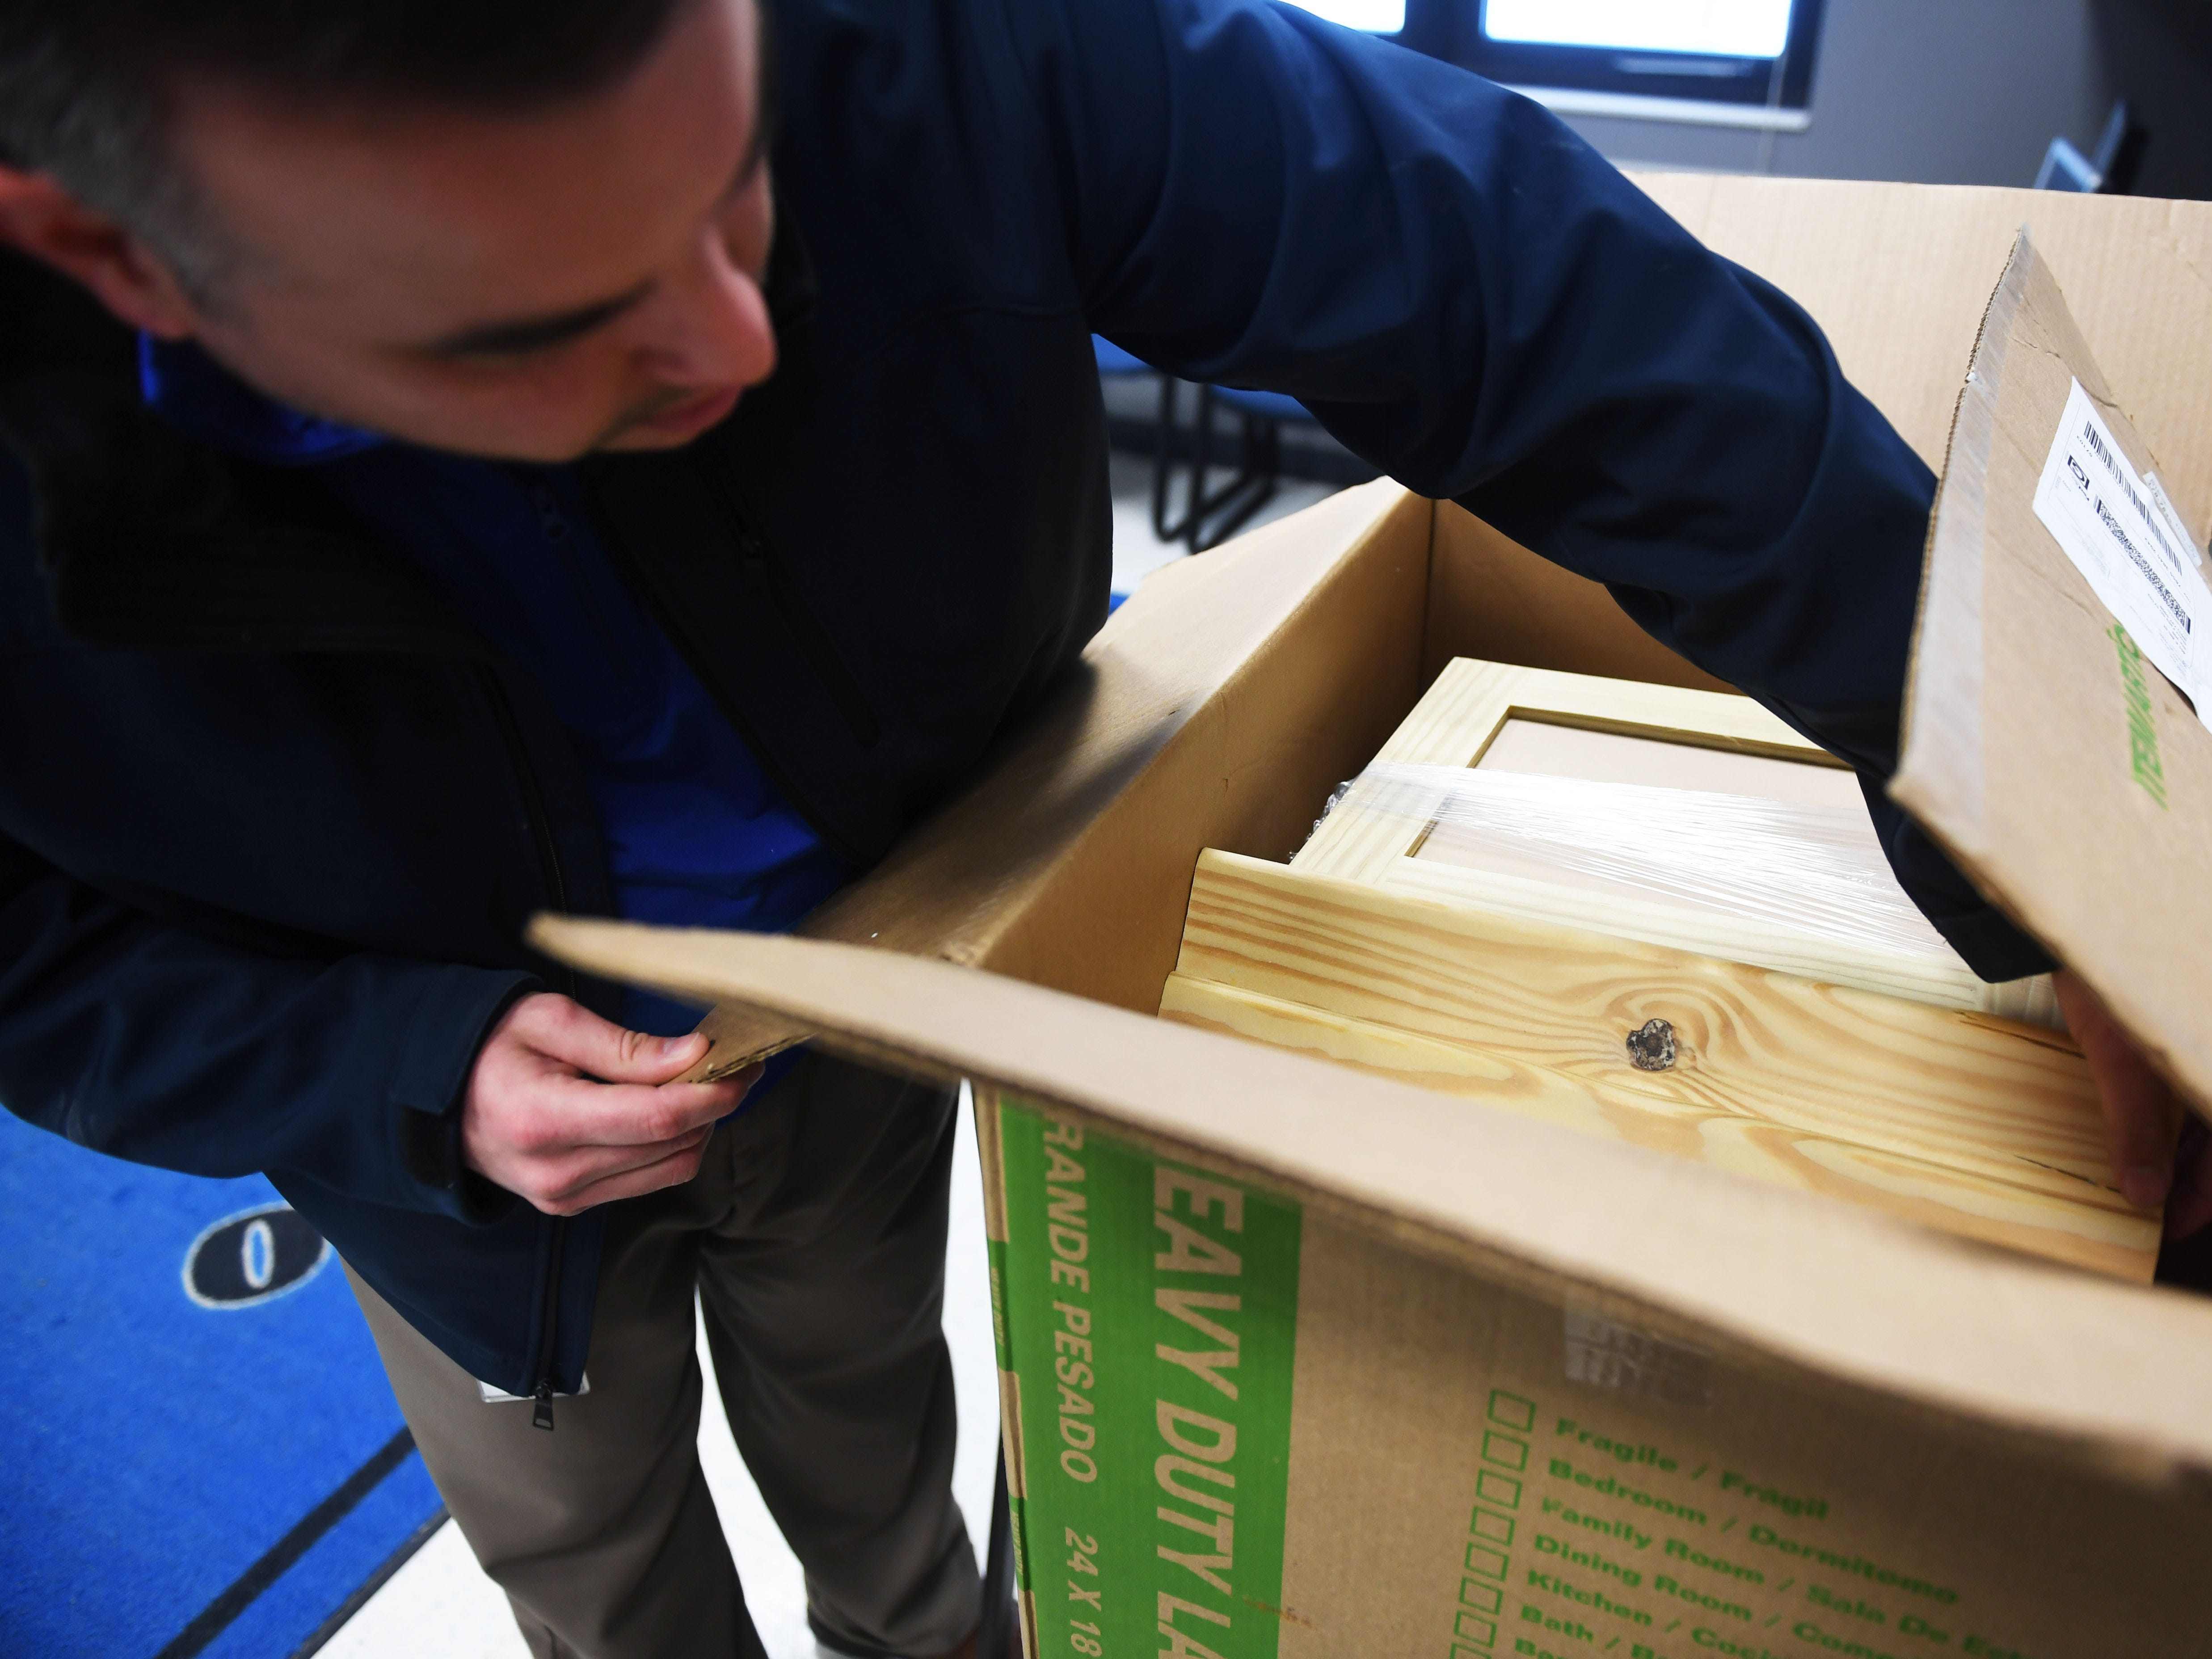 Tony Martinet, Sioux Falls Education Association President, carries a Little Free Library into Whittier Middle School Friday, March 1, in Sioux Falls. Martinet went to six elementary schools to drop of the Little Free Libraries. He said they have a total of 10 Little Free Libraries they want to give to schools. Four of the libraries are still available.